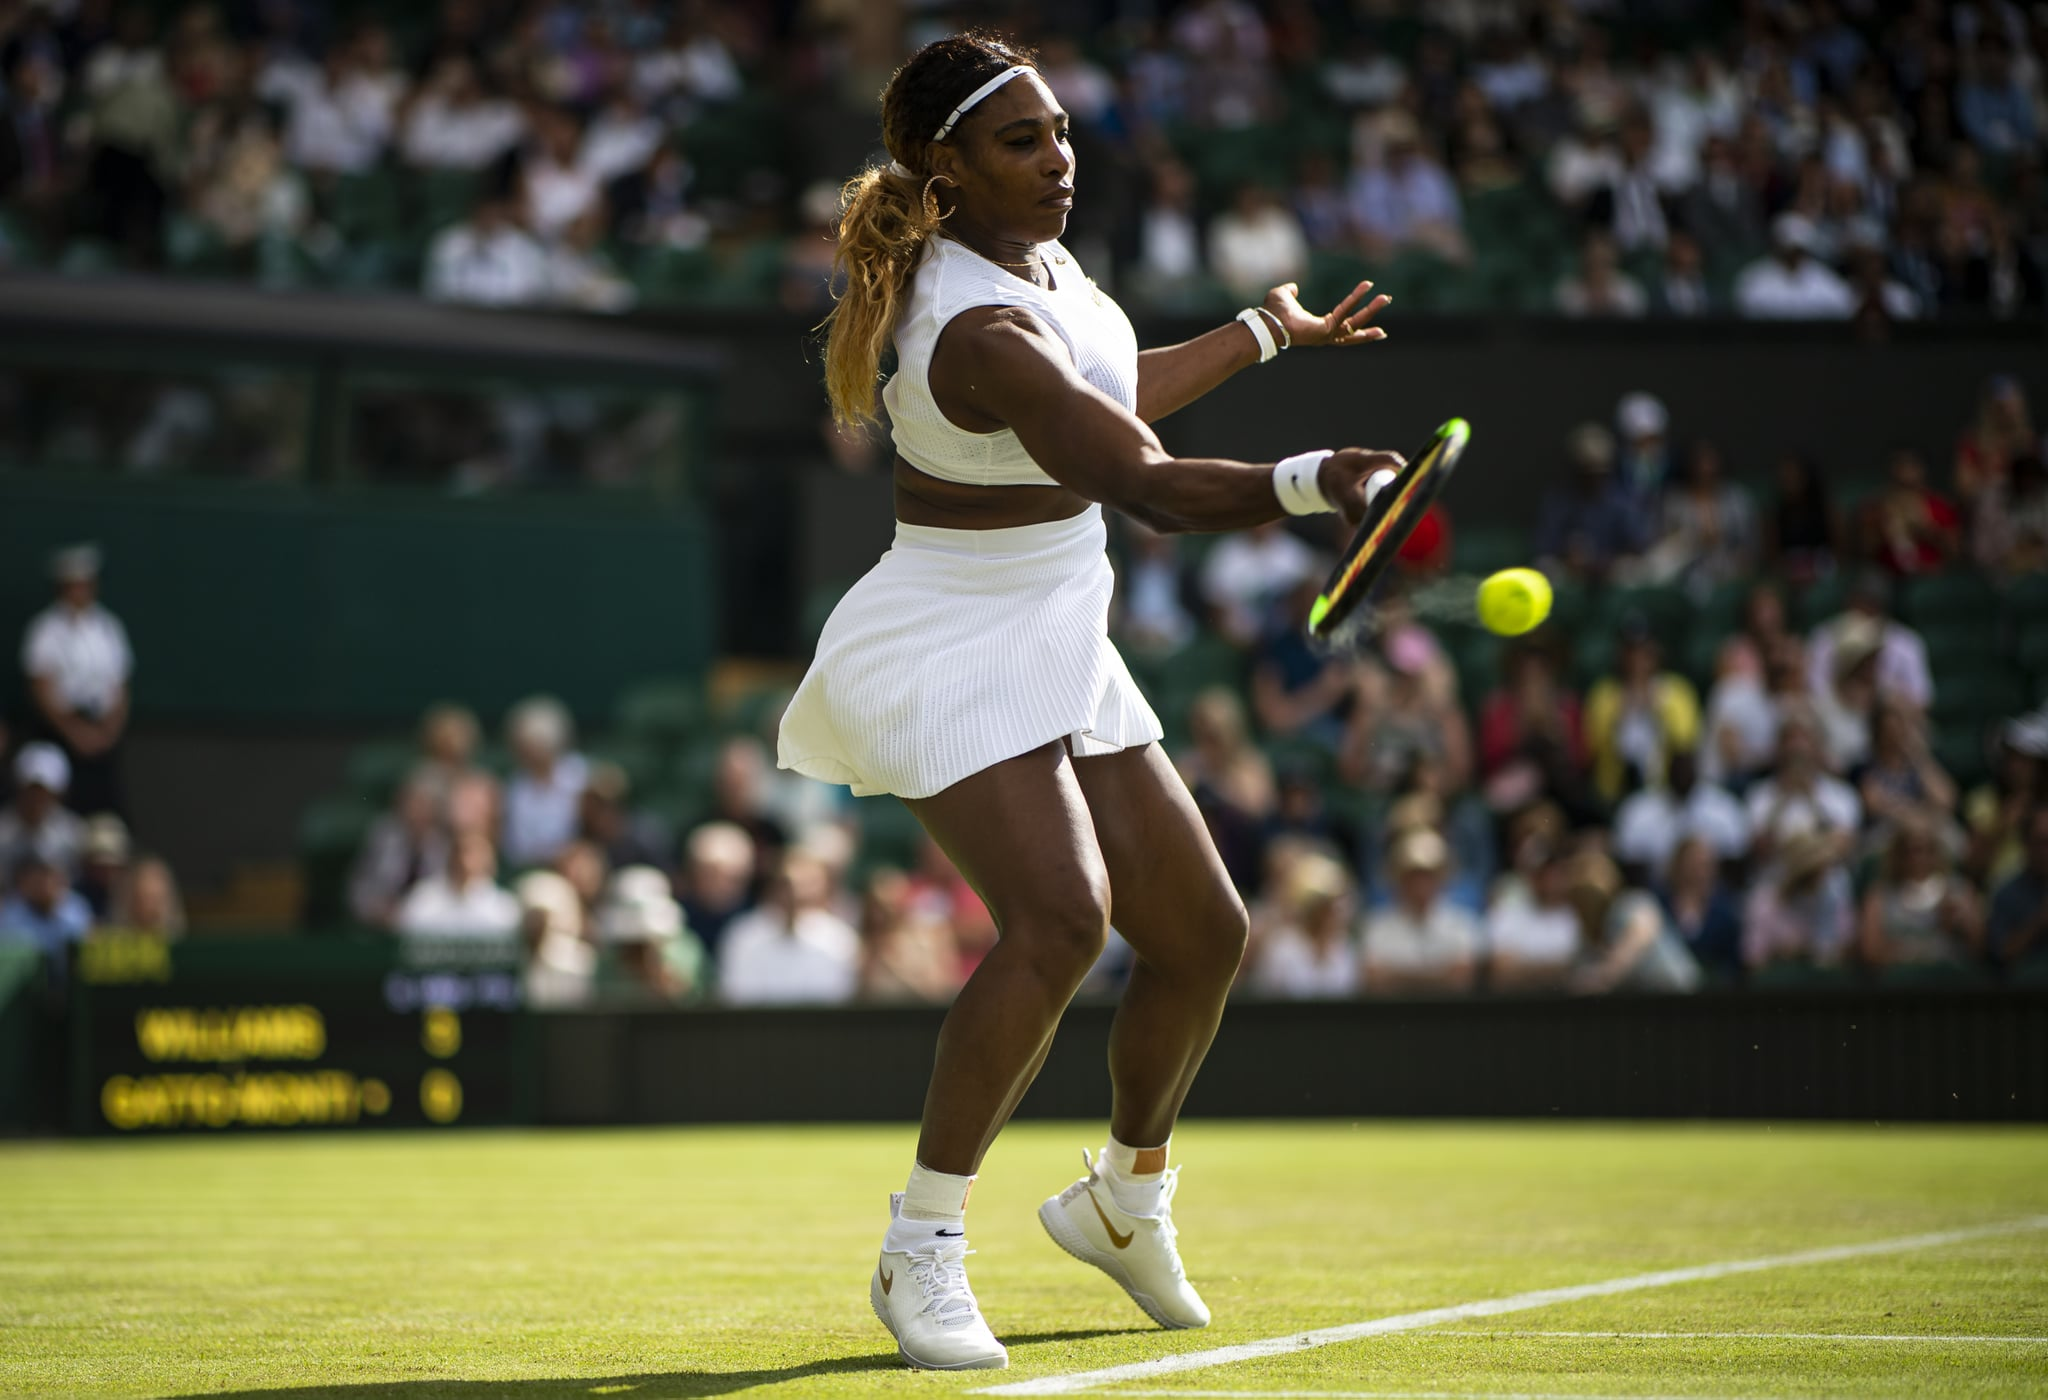 LONDON, ENGLAND - JULY 02: Serena Williams of the United States hits a forehand against Giulia Gatto-Monticone of Italy during Day 2 of The Championships - Wimbledon 2019 at All England Lawn Tennis and Croquet Club on July 02, 2019 in London, England. (Photo by TPN/Getty Images)